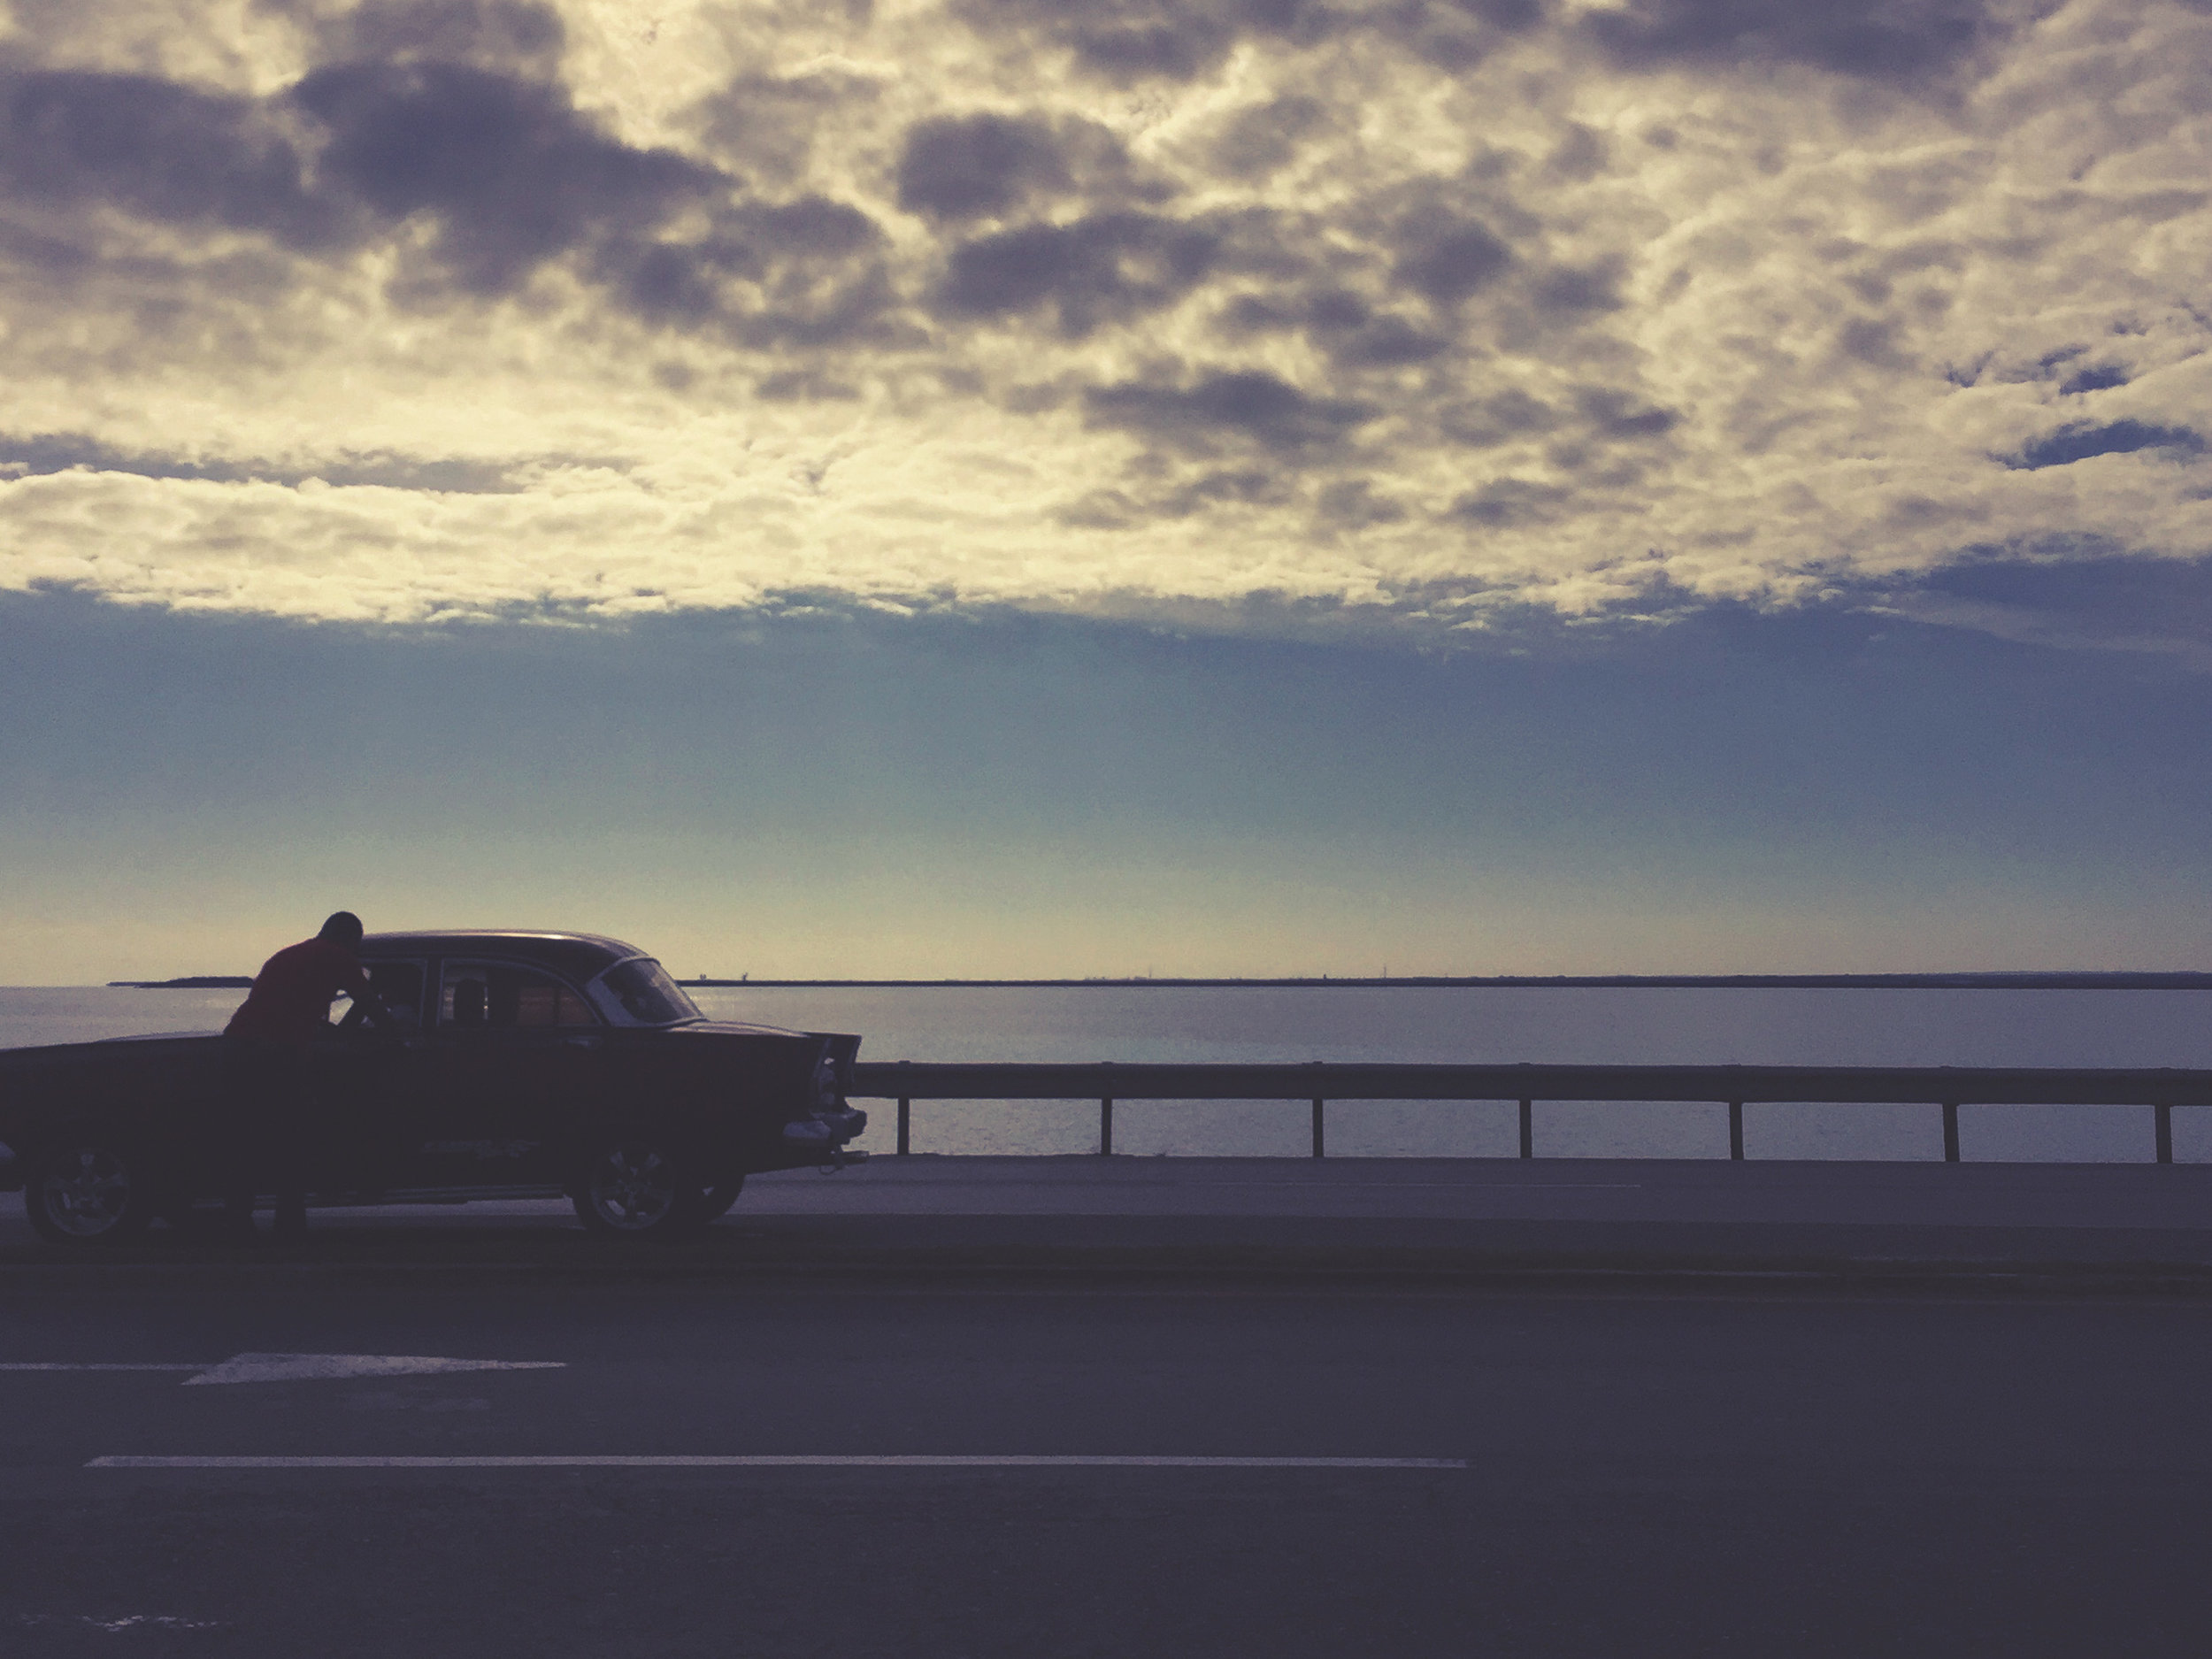 A quick chat next to the empty highway overlooking the ocean